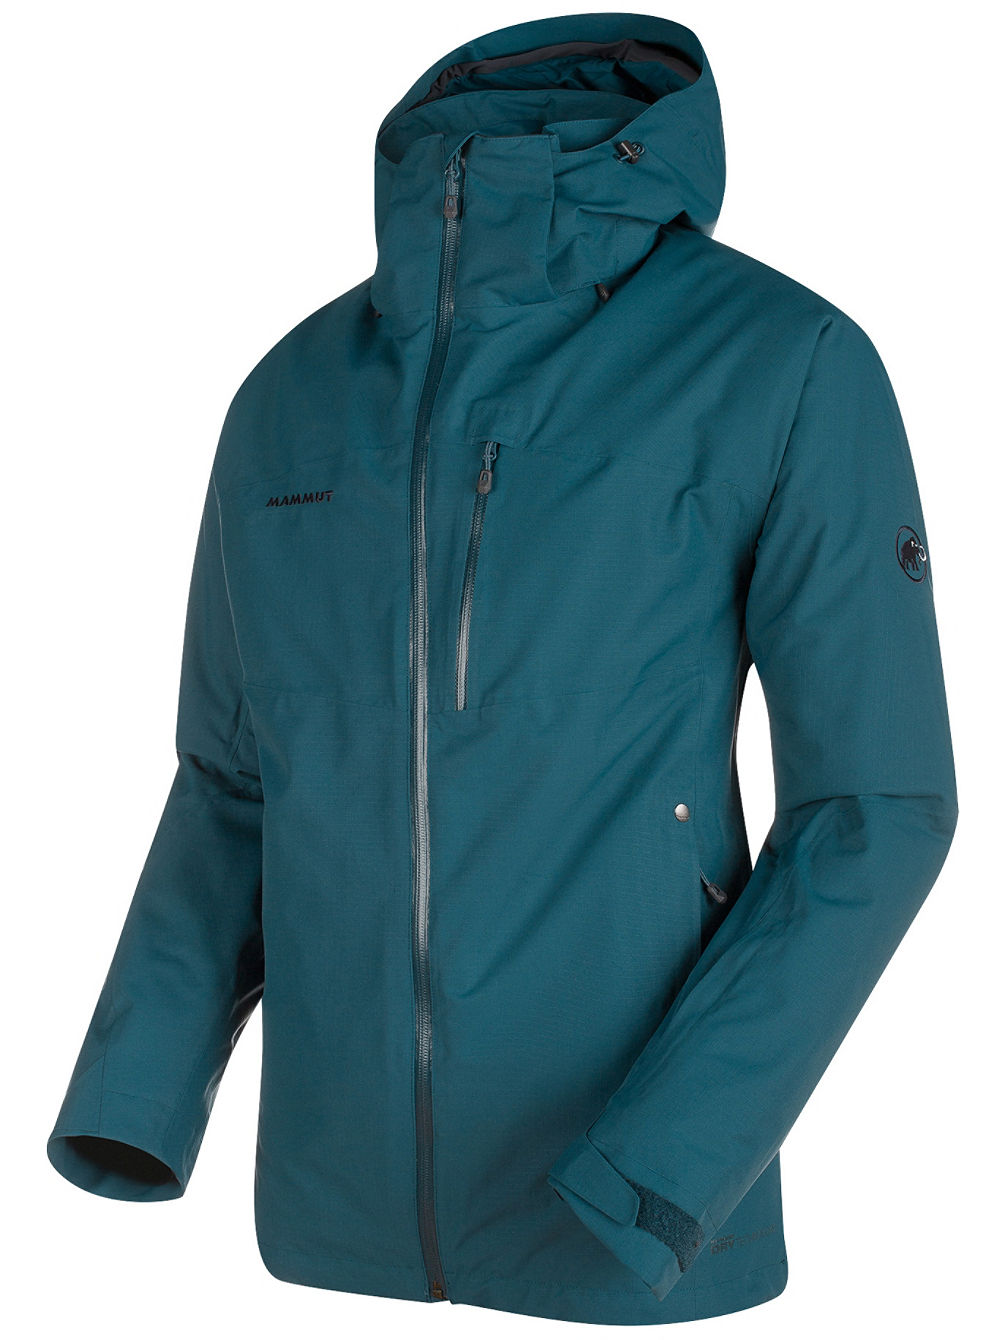 Cruise Hs Thermo Outdoorjacke